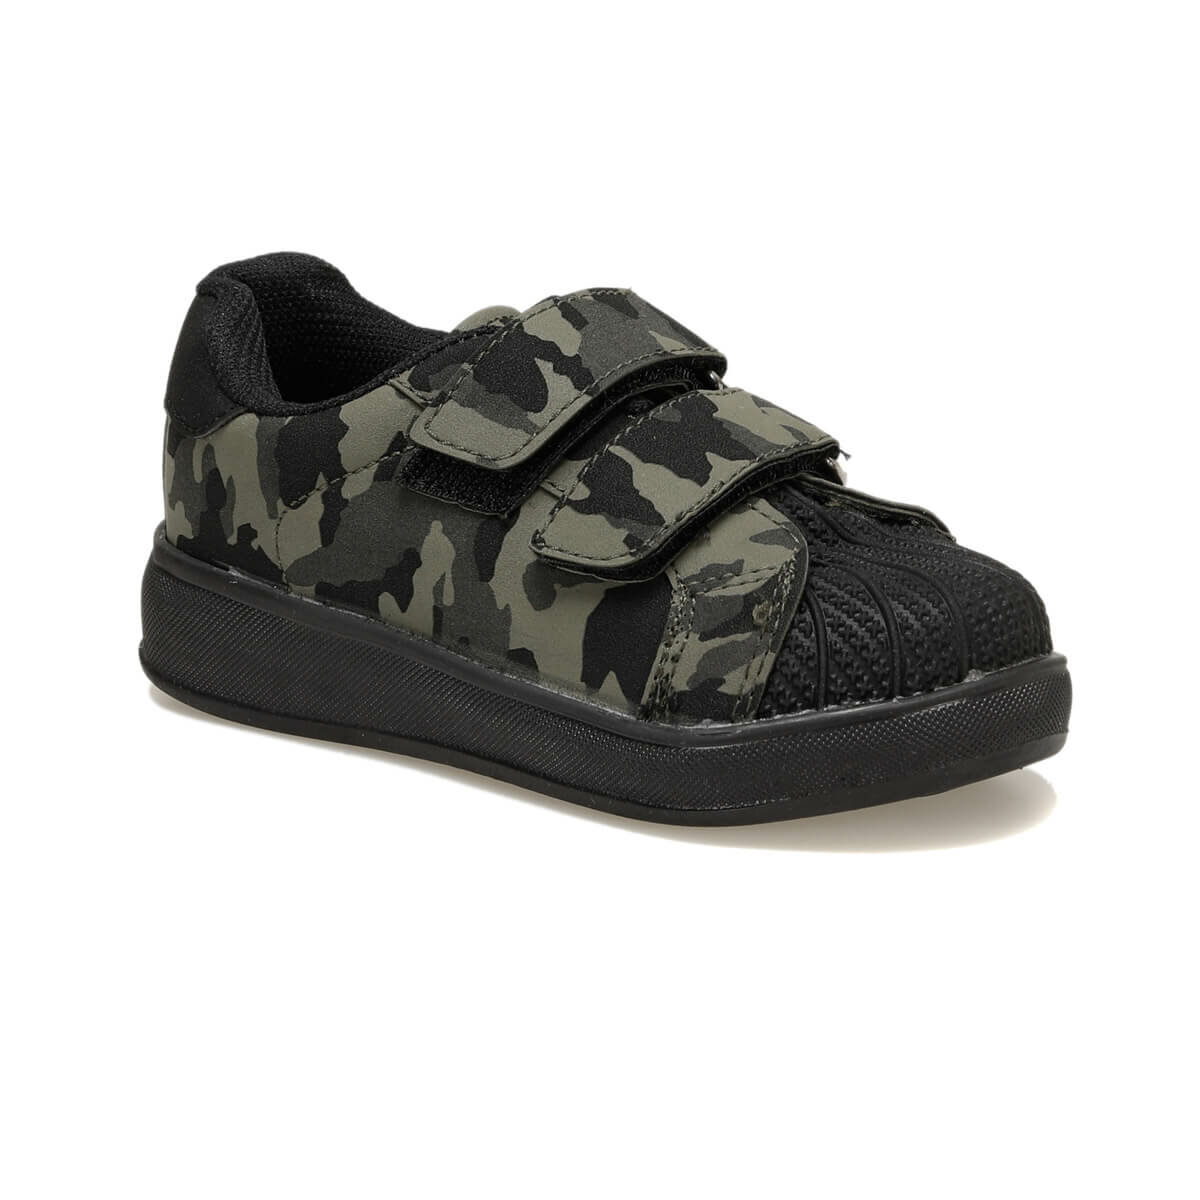 FLO 92. 510805.P Khaki Male Child Sneaker Shoes Polaris